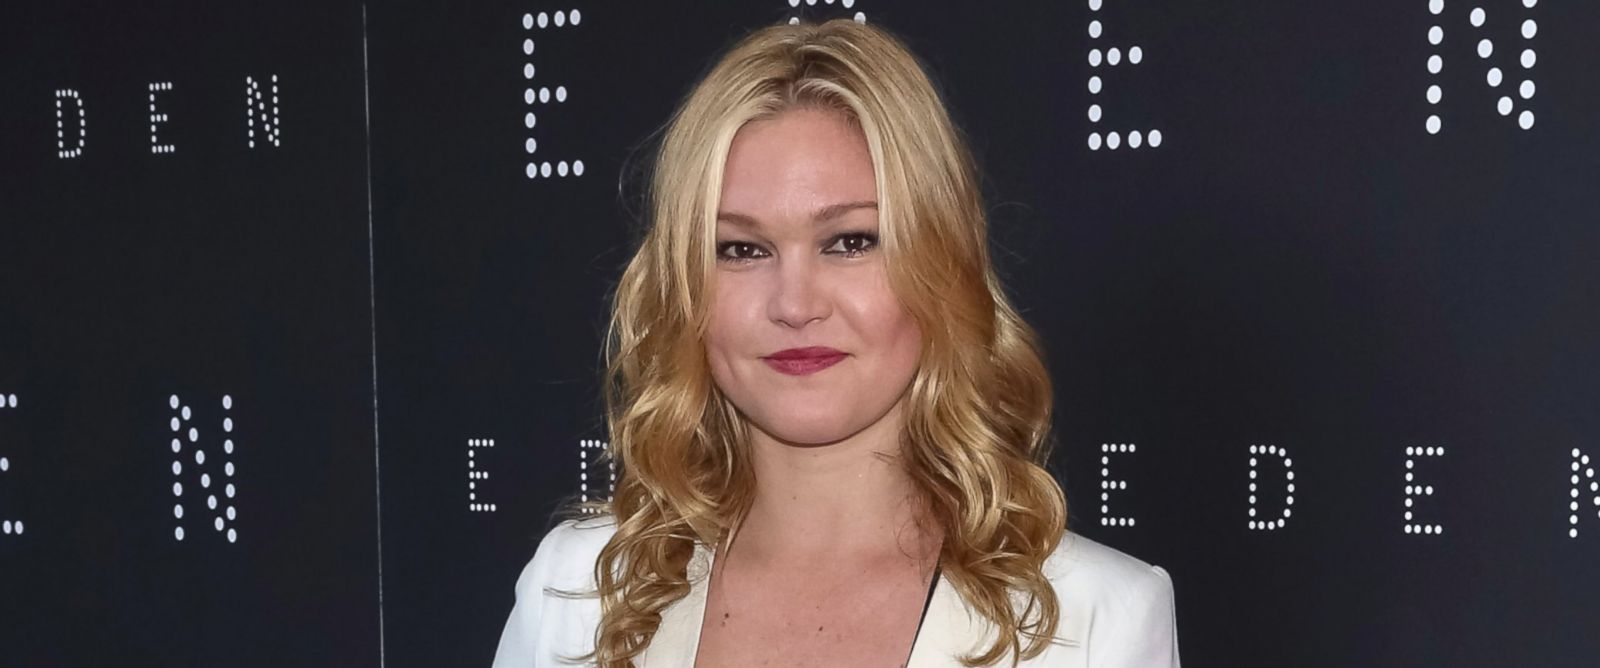 "PHOTO: Julia Stiles arrives for the New York premiere of ""Eden"" held at the IFC Center, June 8, 2015 in New York."